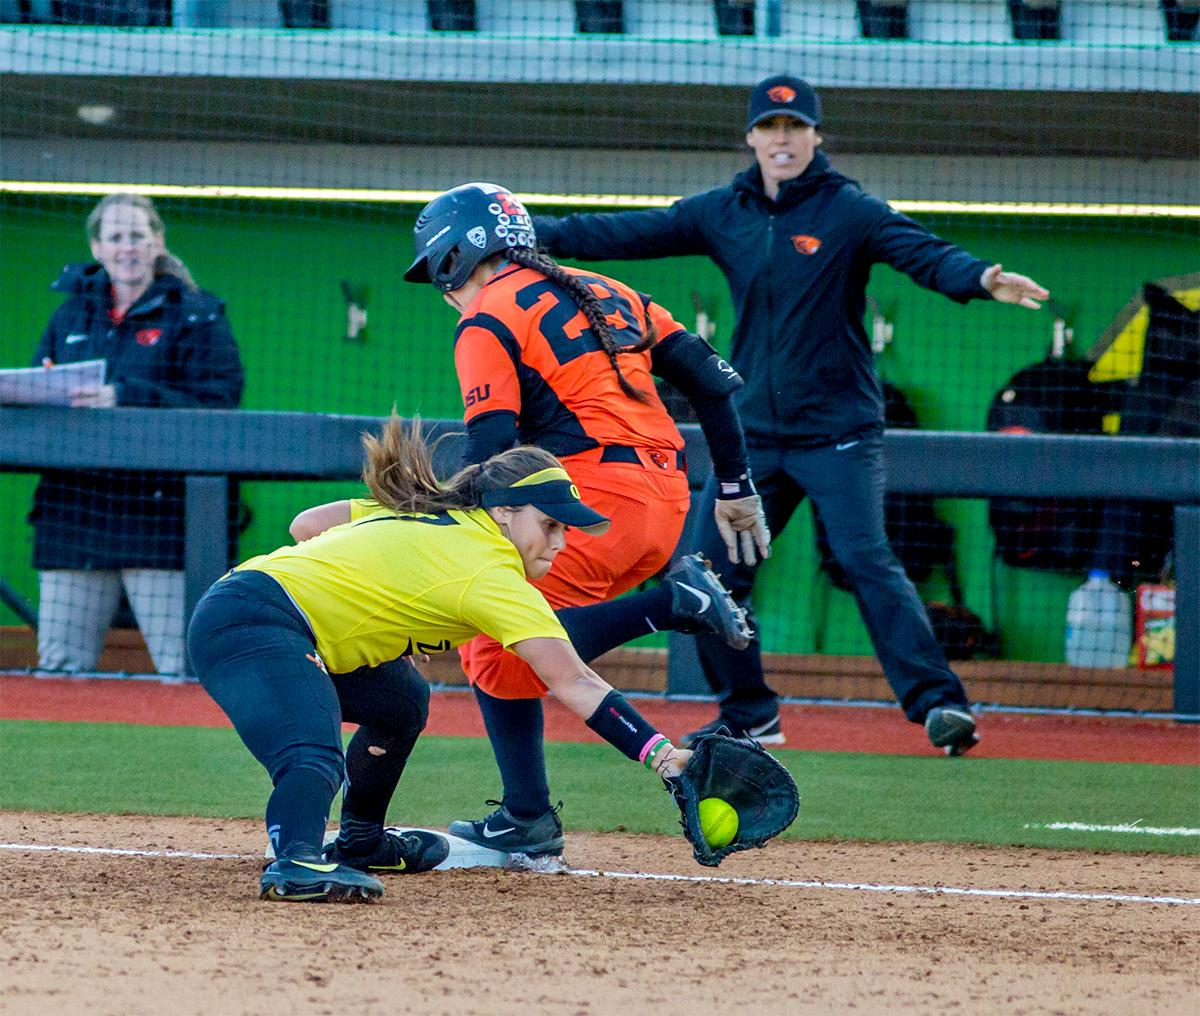 The Beavers' Lovie Lopez (#29) hits the base safe. The Oregon Ducks defeated the Oregon State Beavers 8-0 in game one of the three-game Civil War series on Friday night at Jane Sanders Stadium. The game was 0-0 until Gwen Svekis (#21) hit a solo home run in the fourth inning. Mia Camuso hit a grand slam in the fifth inning, ending the game for the Ducks by mercy rule. With tonight's victory, the Ducks are 39-6 and 12-6 in Pac-12 play. Photo by August Frank, Oregon News Lab